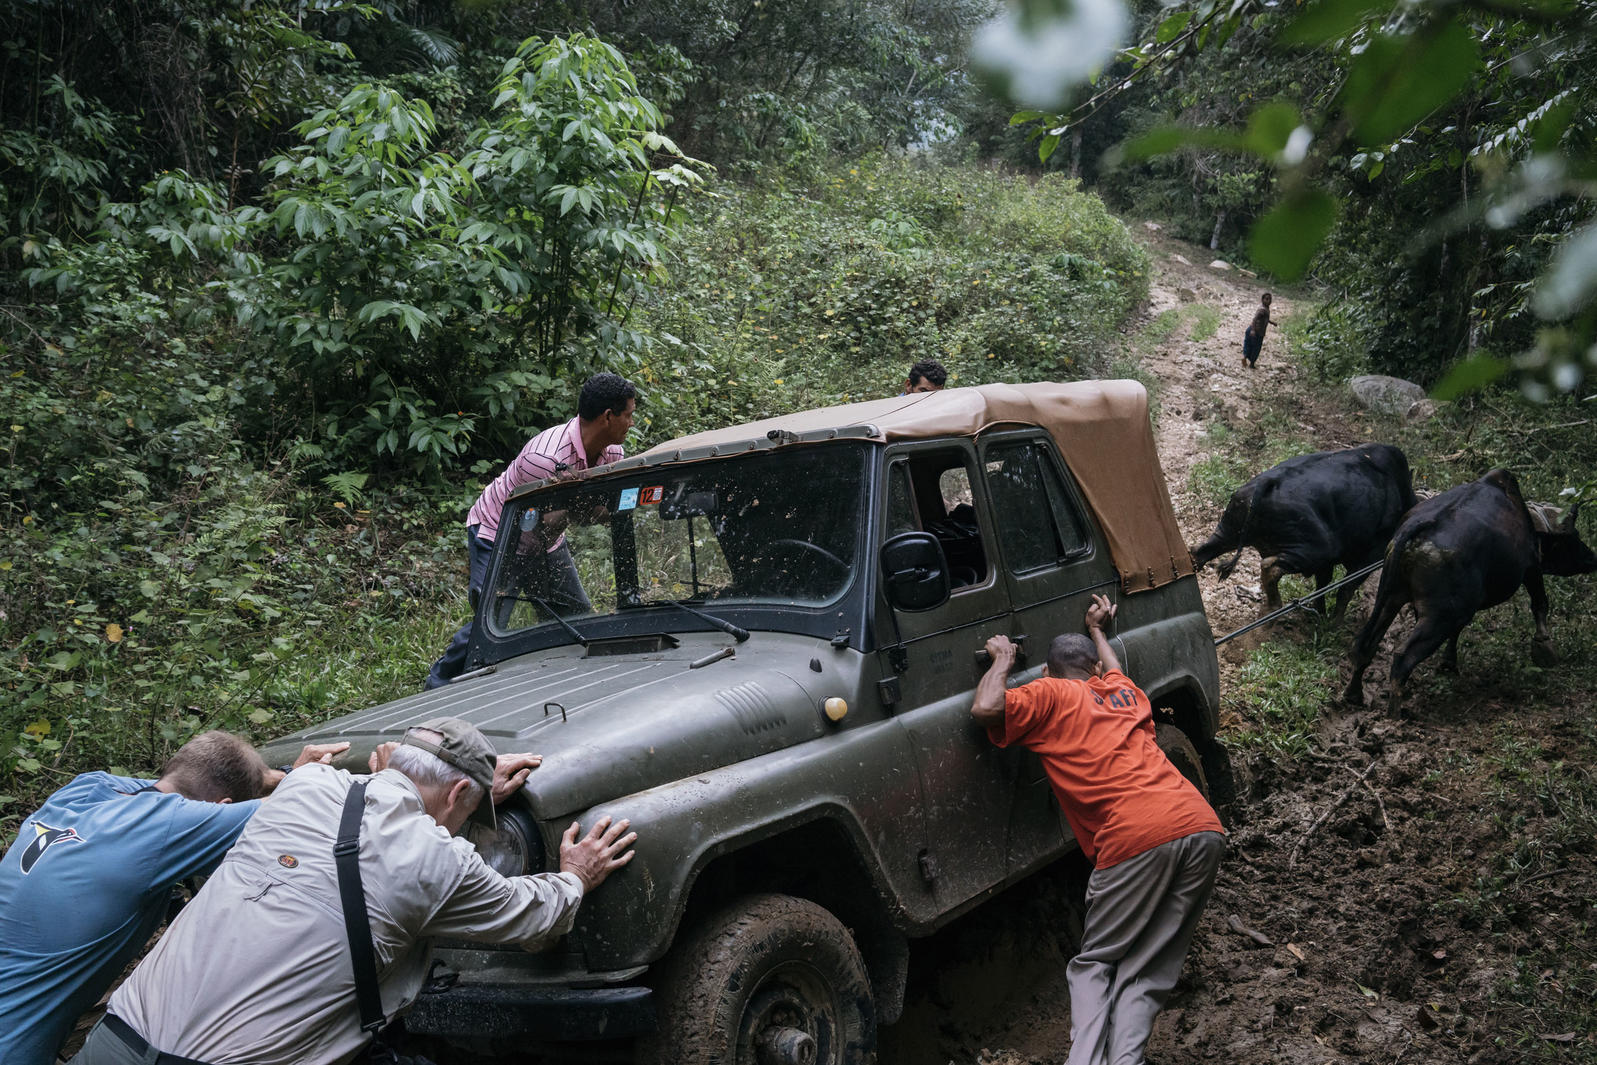 Stuck in the mud with a dead battery, the Ivory-Bill team gets a little help from kindly neighbors and a pair of oxen to get their jeep back on track. Greg Kahn